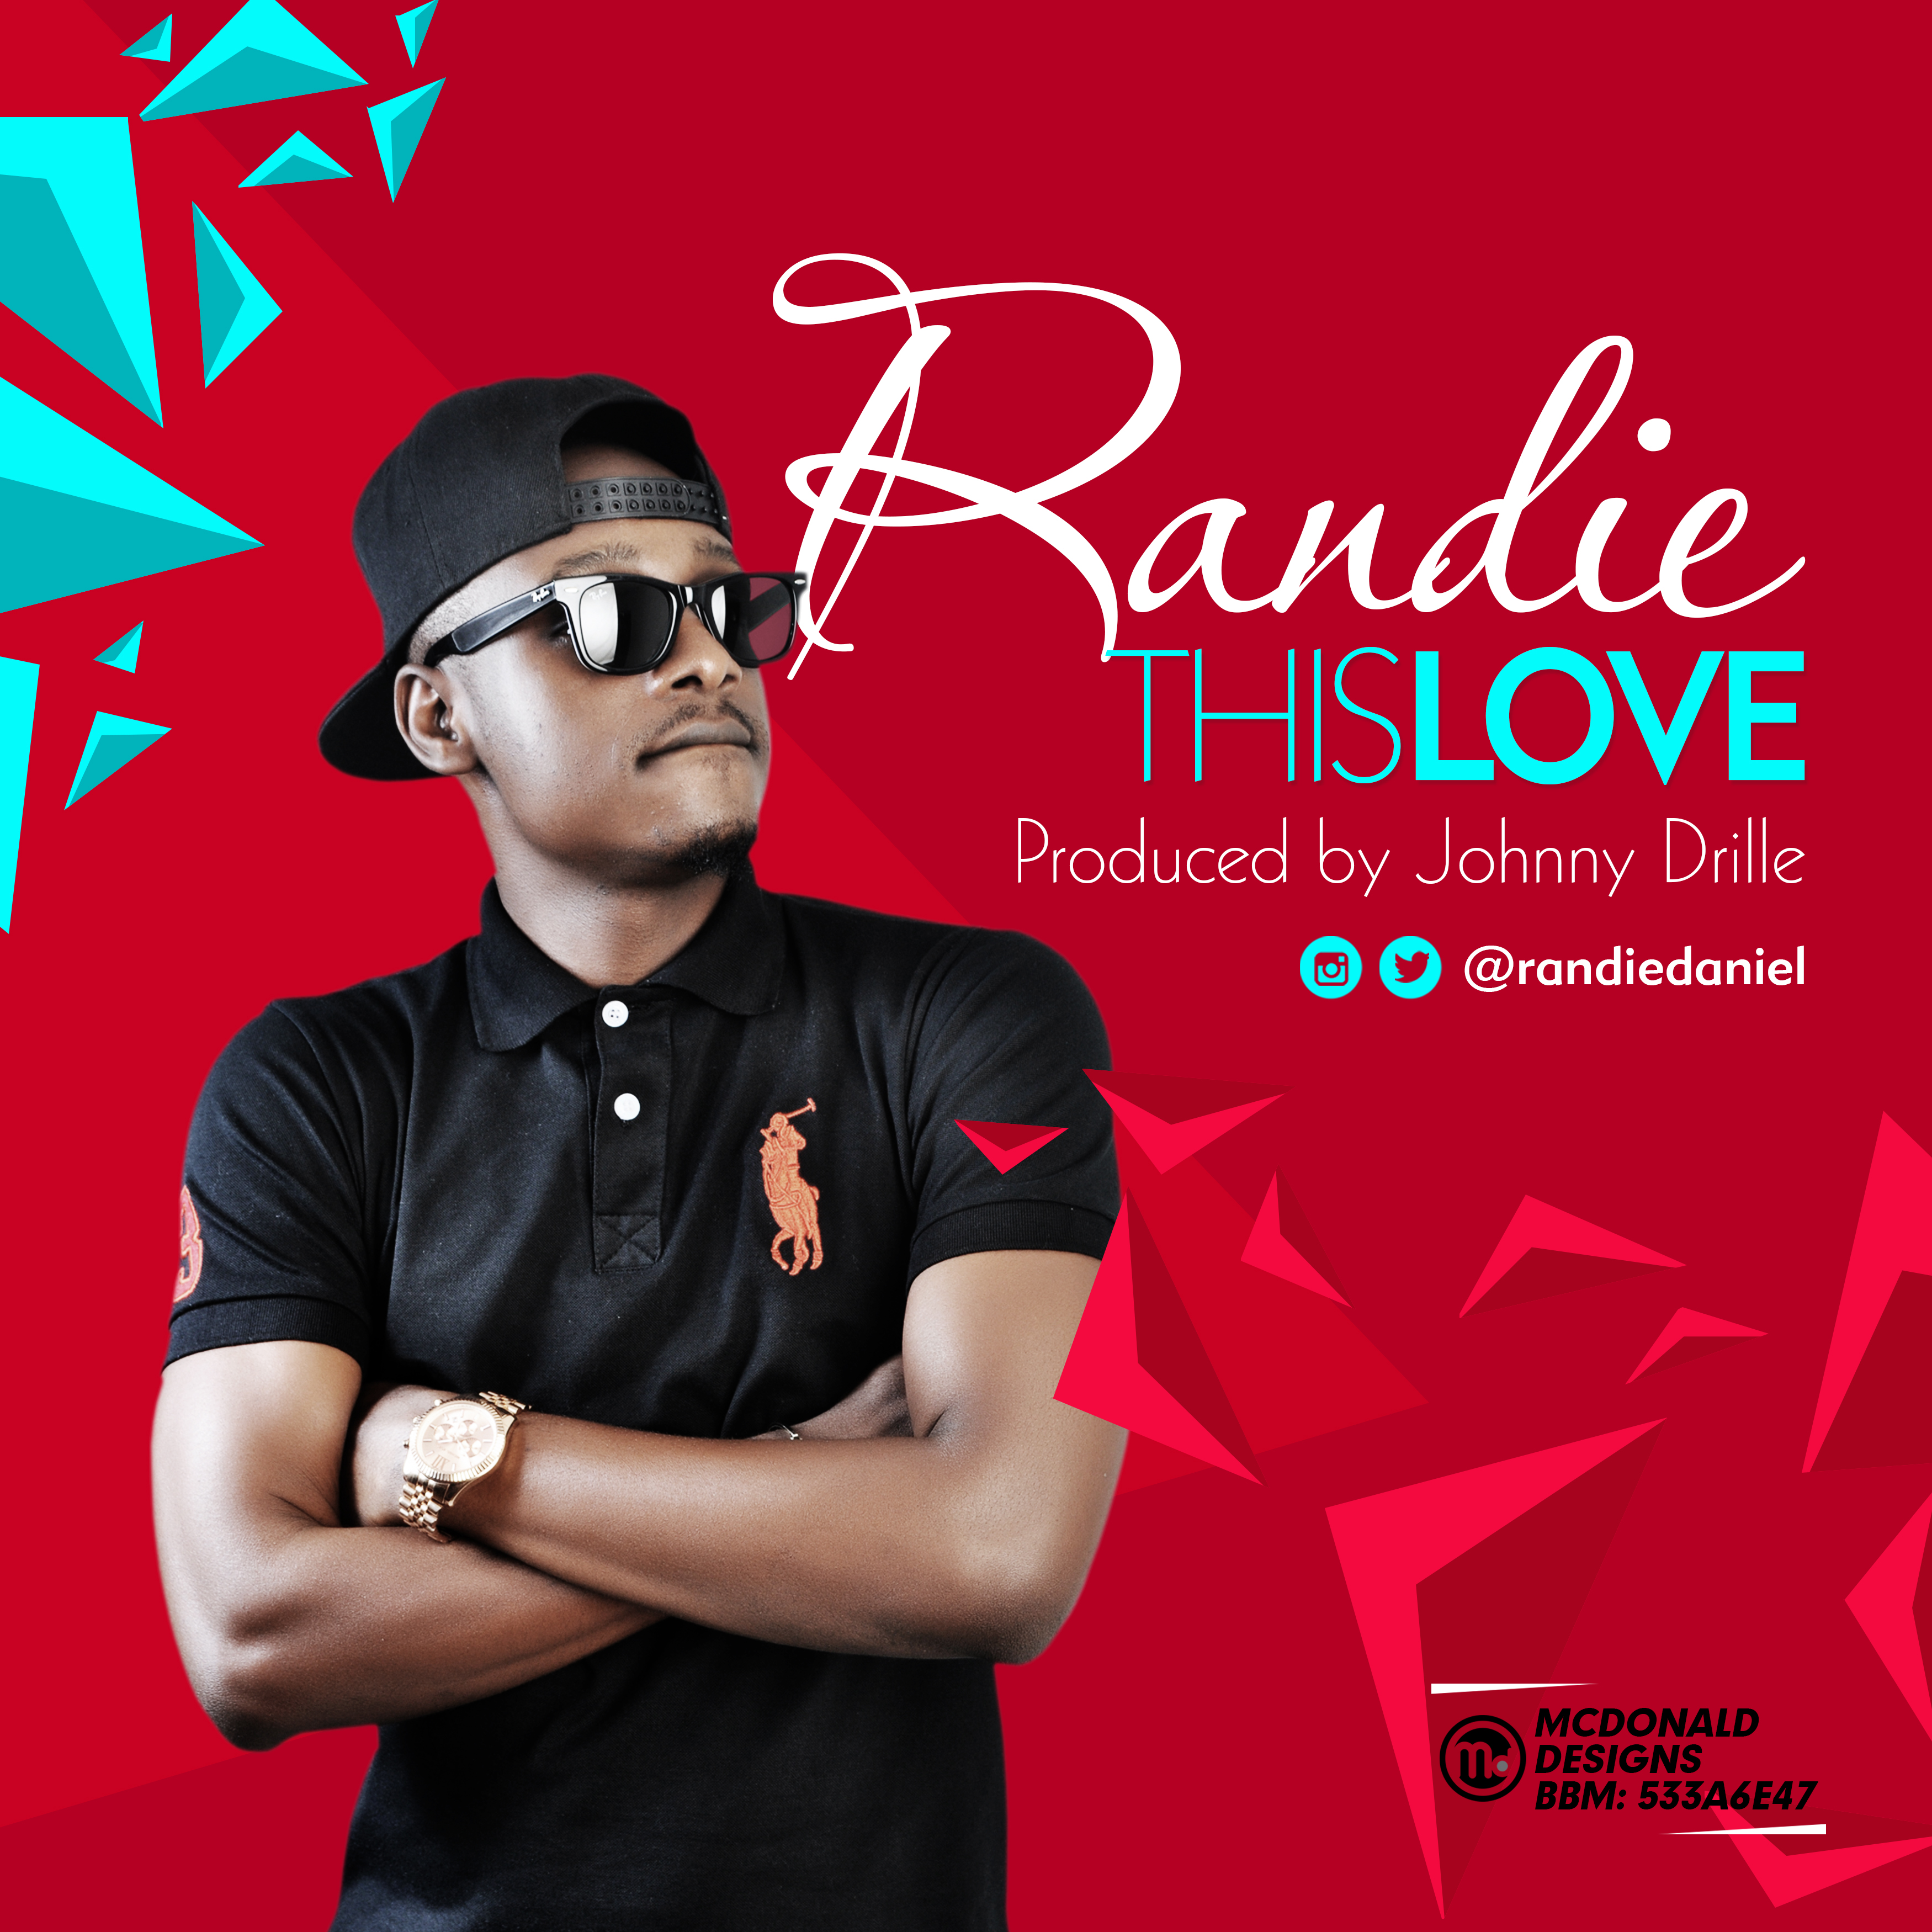 Randie - This Love (Prod. By Johnny Drille)